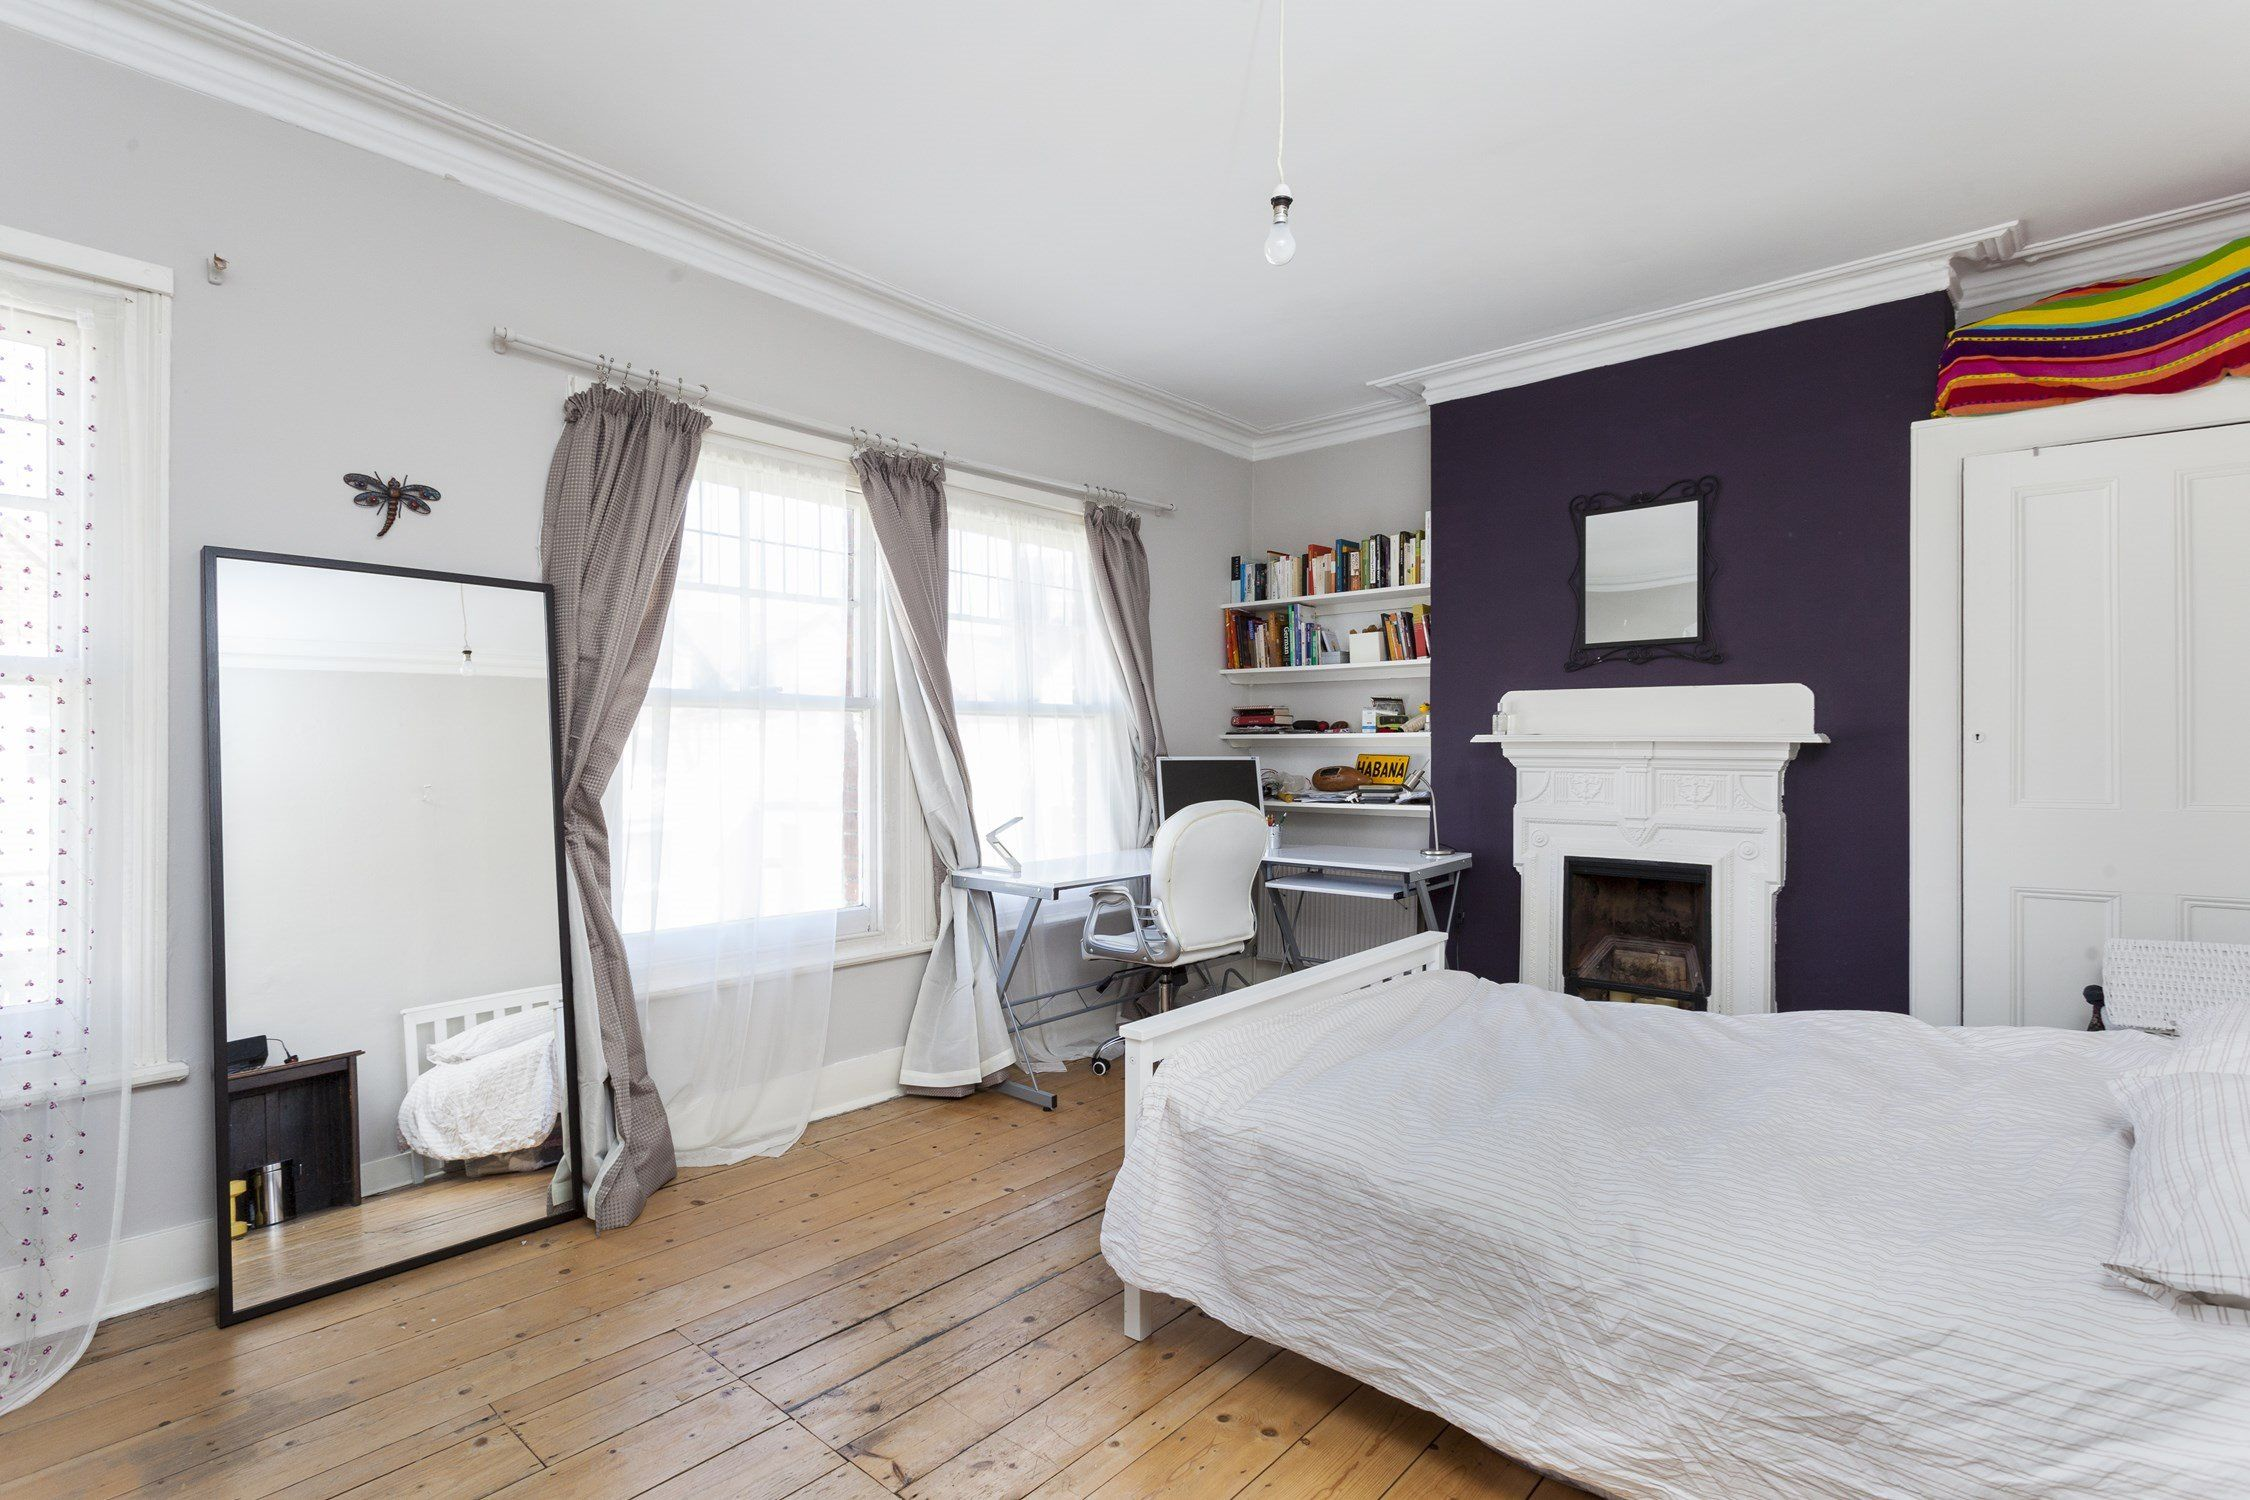 5 bedroom house interior  bed flat recently sold sstc in clapham north sandmere road sw